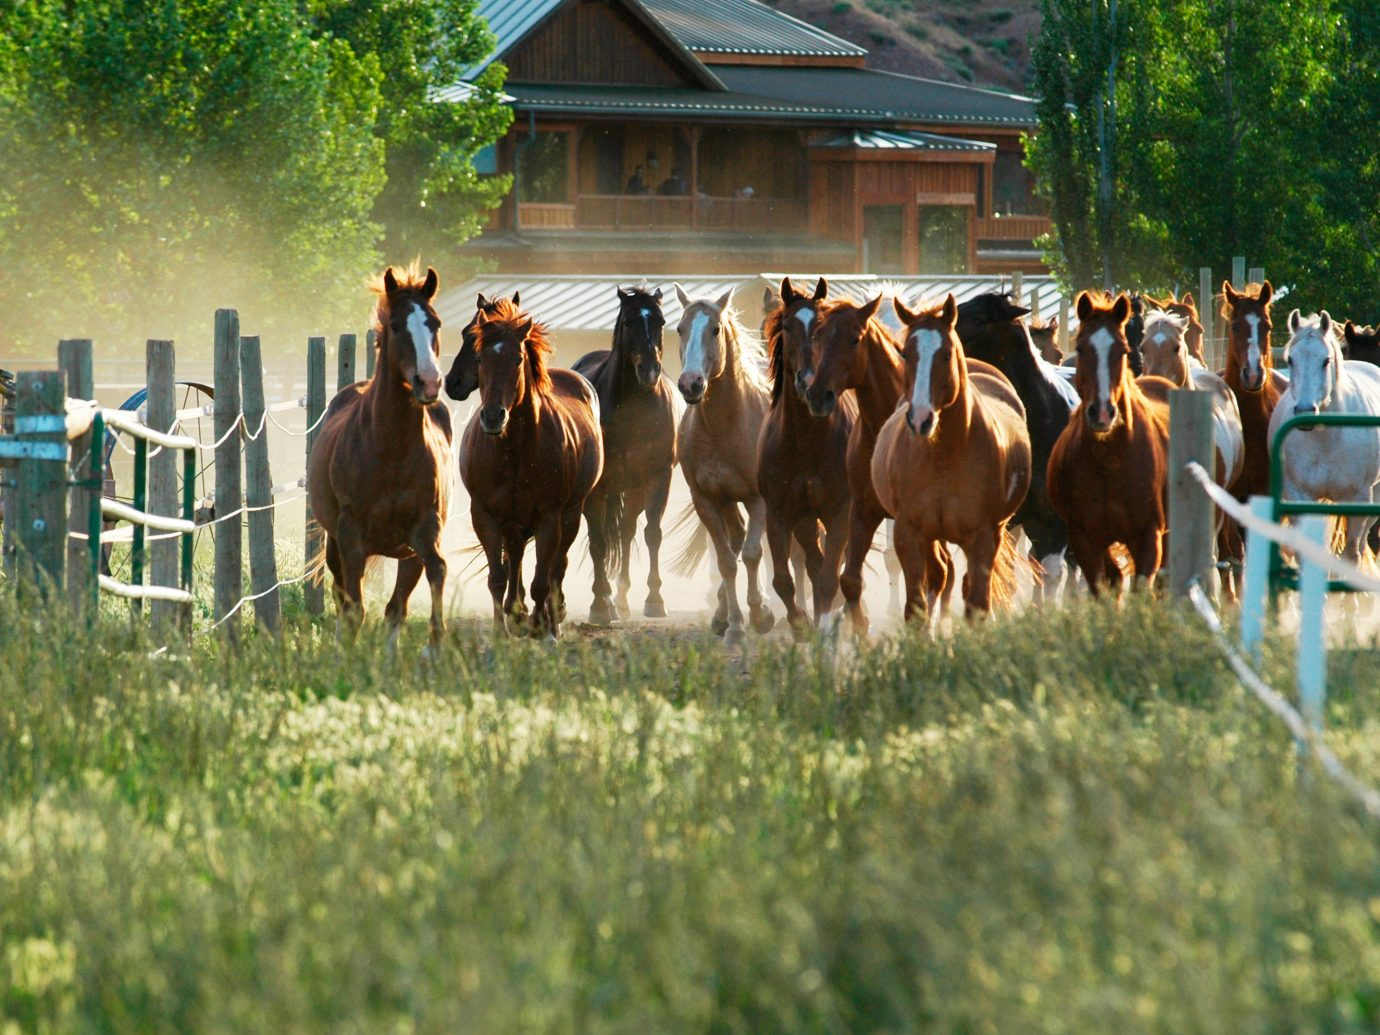 Grounds Outdoor Activities Outdoors Outdoors + Adventure Scenic views Trip Ideas Wildlife grass outdoor tree horse cow herd group pasture animal cattle mammal Farm rural area horse like mammal row Ranch line lined several